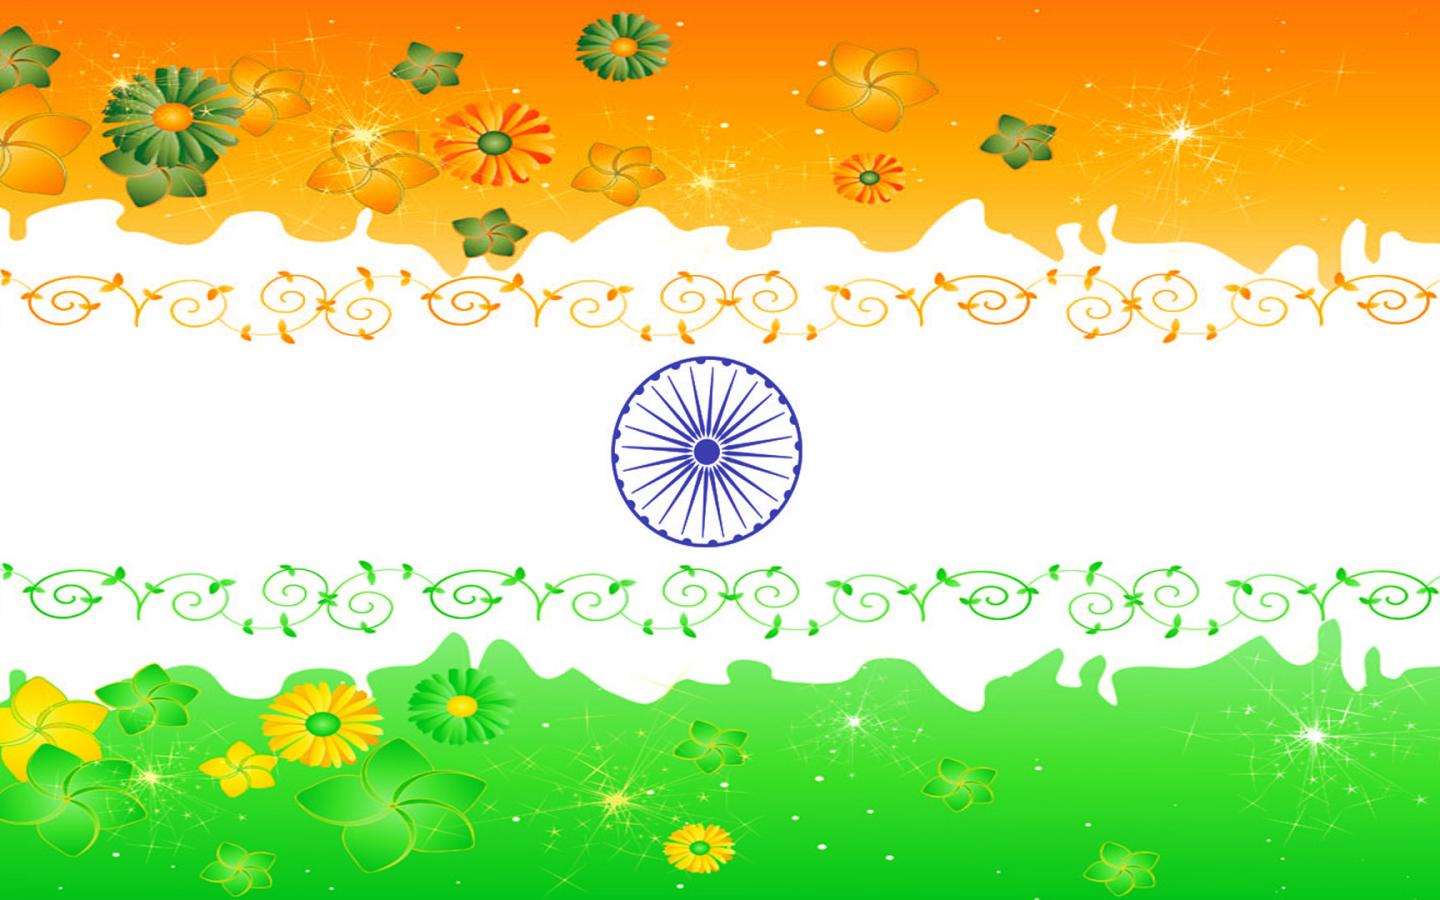 Indian Tiranga 3d Wallpaper India Flag With Floral Ornaments In Three Colors Hd